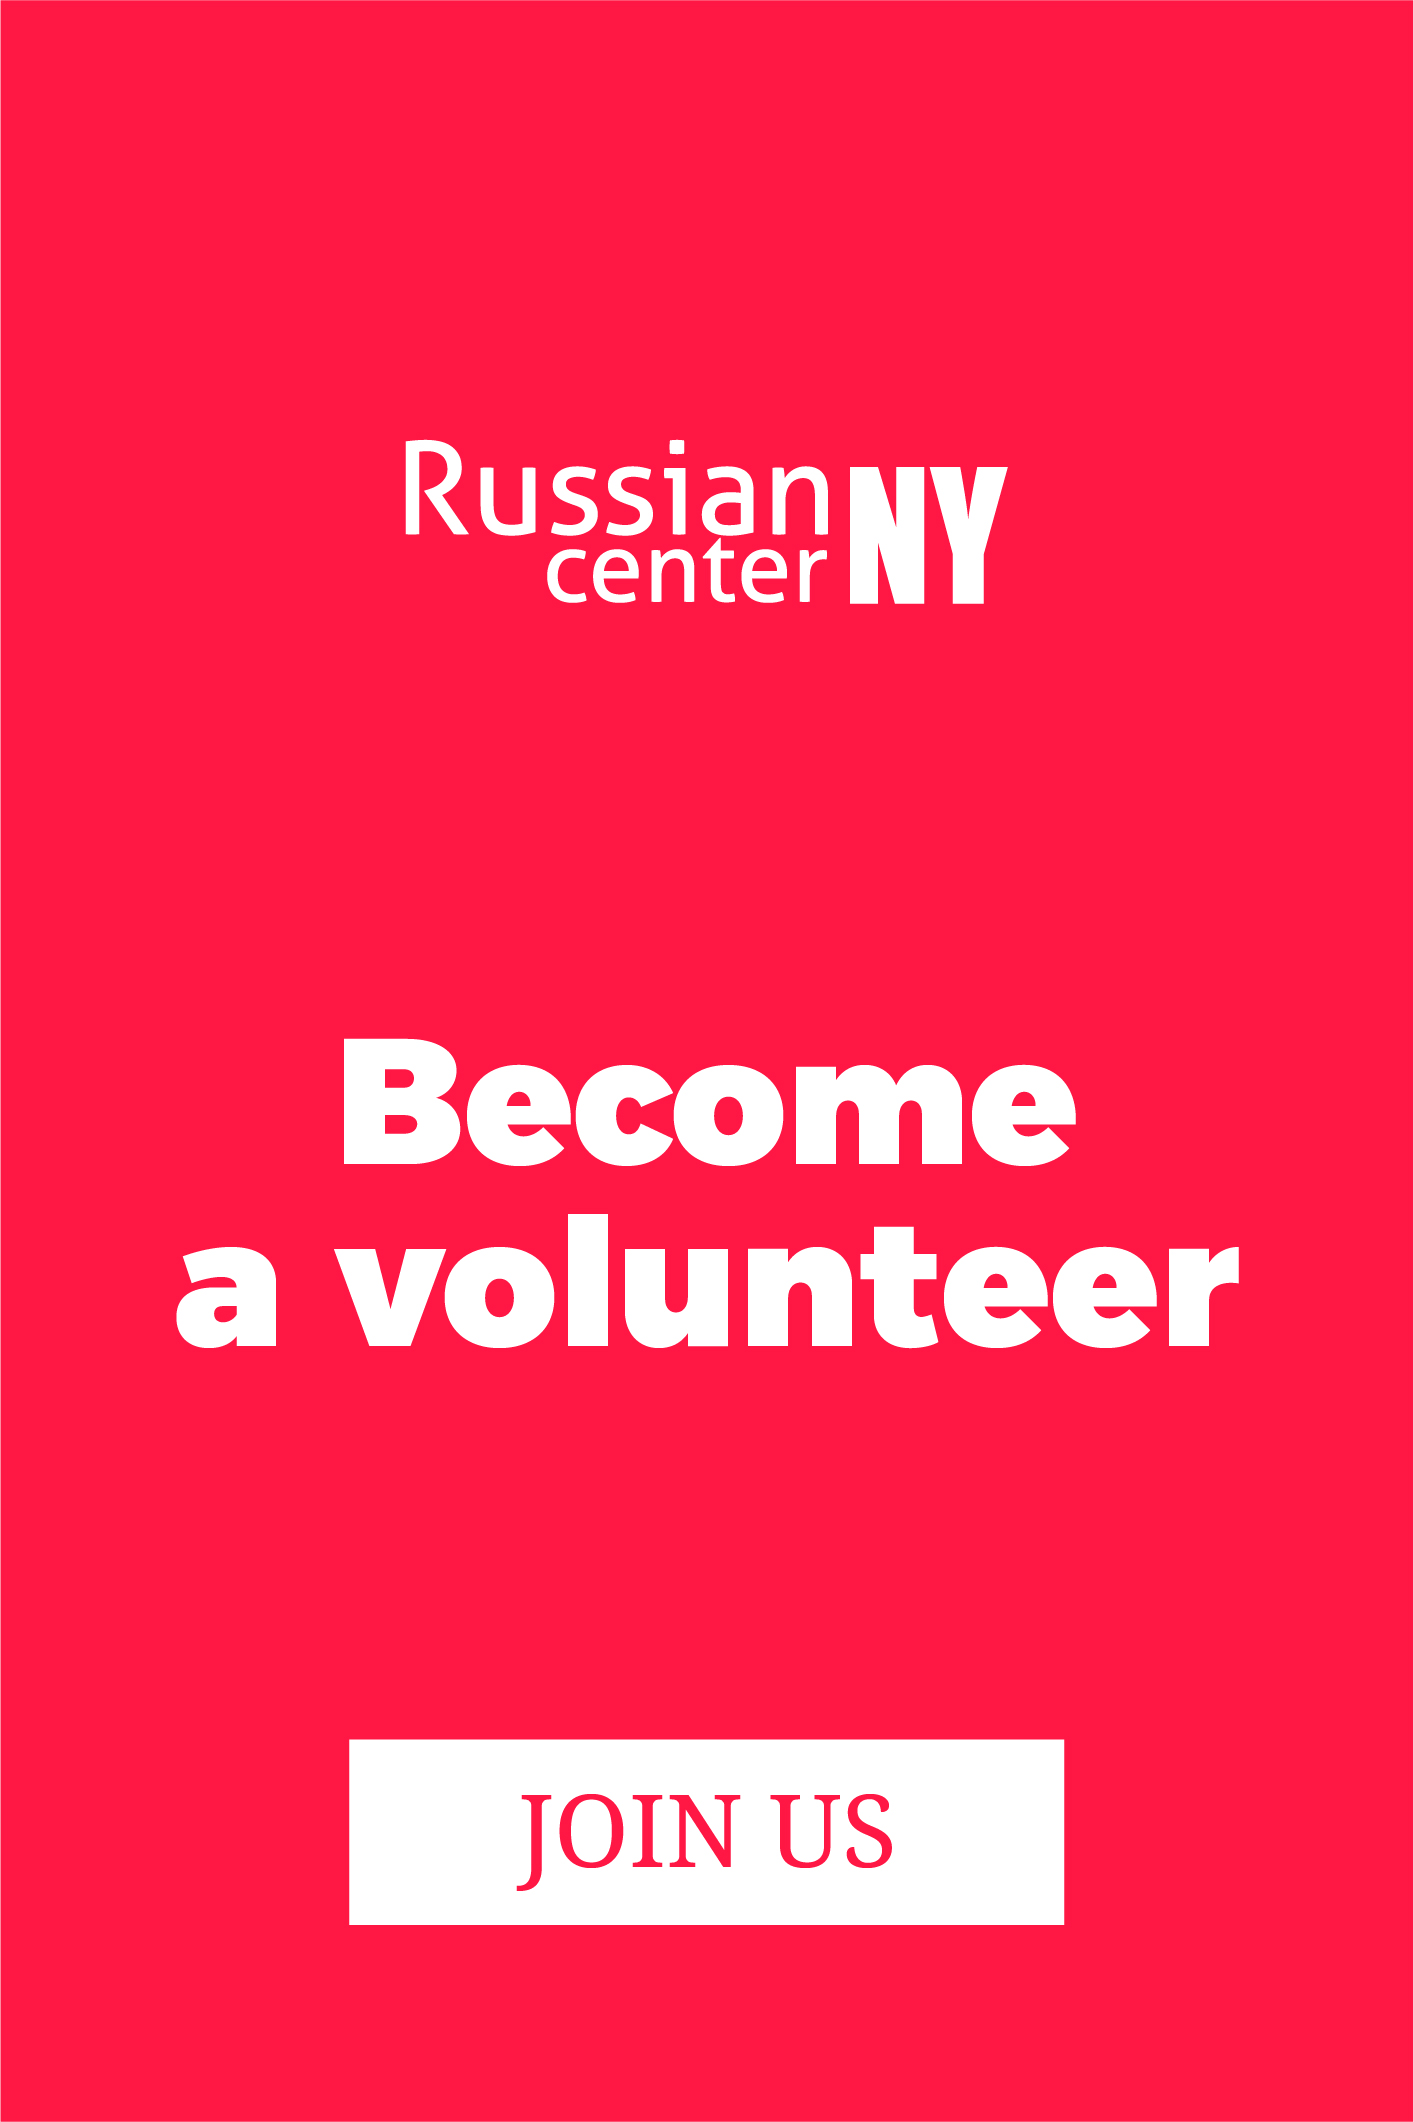 RCNY-volunteer-banner-red